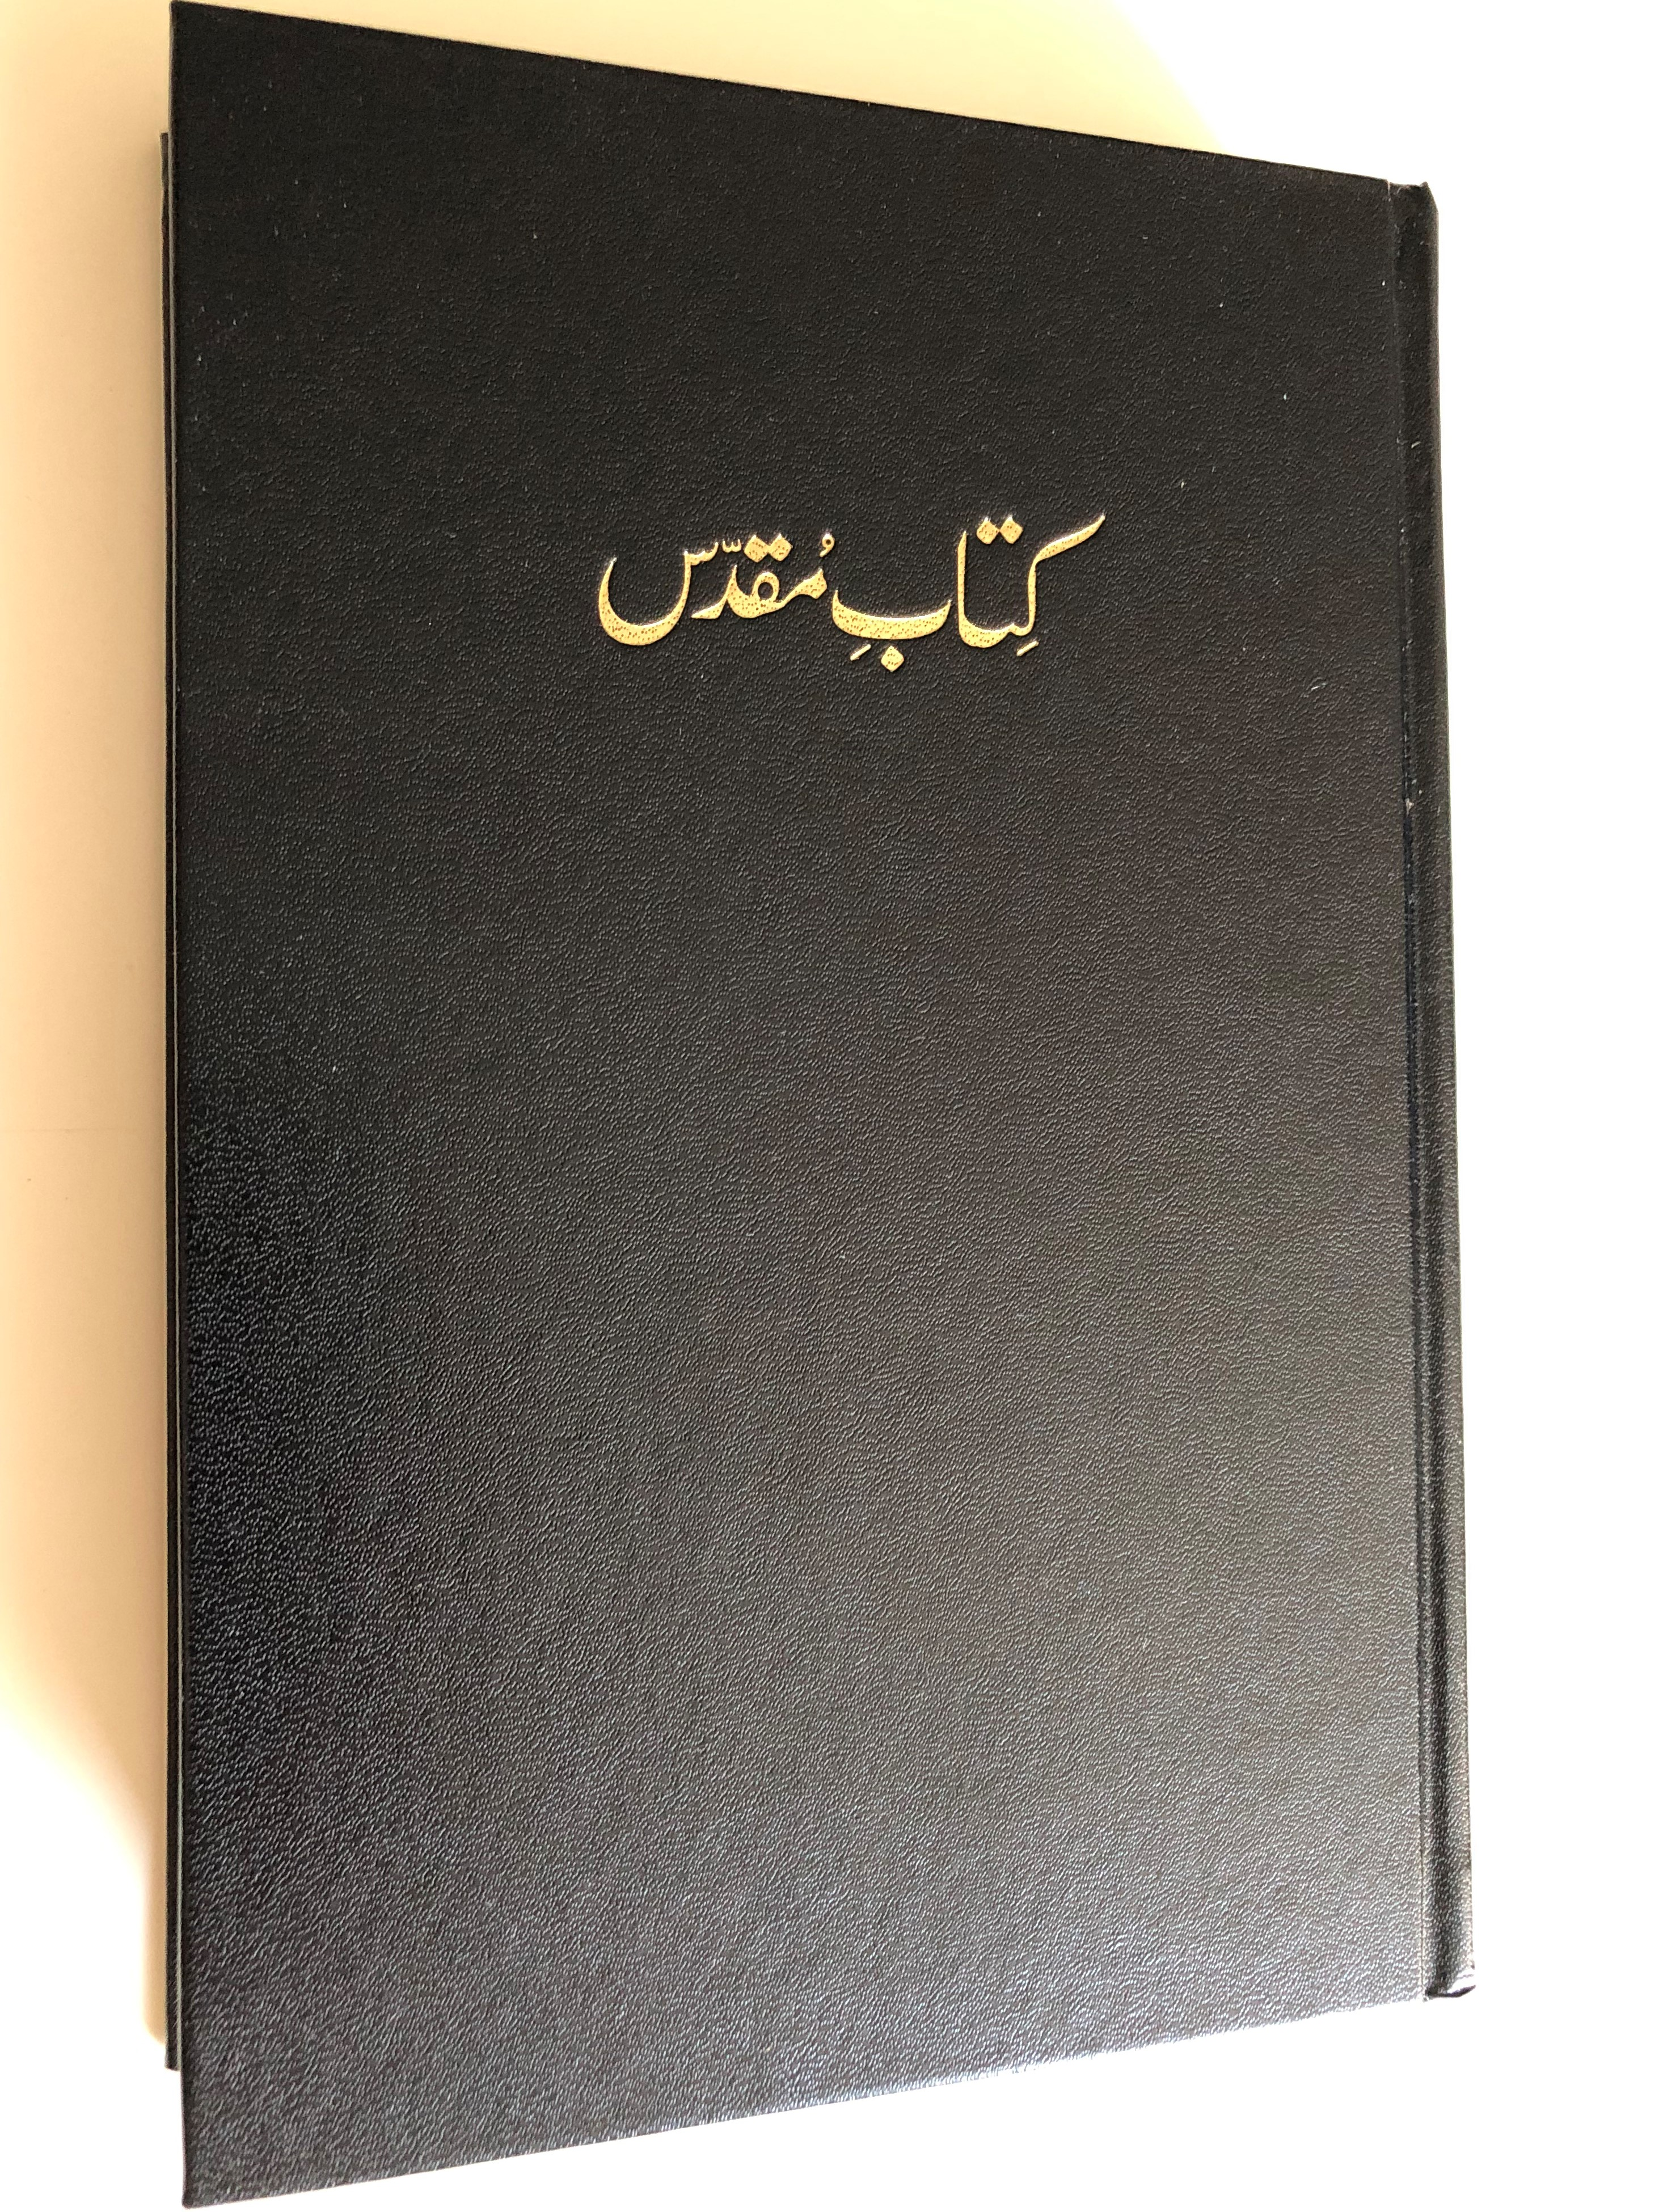 holy-bible-in-urdu-language-revised-version-pakistan-bible-society-2019-hardcover-black-1-.jpg